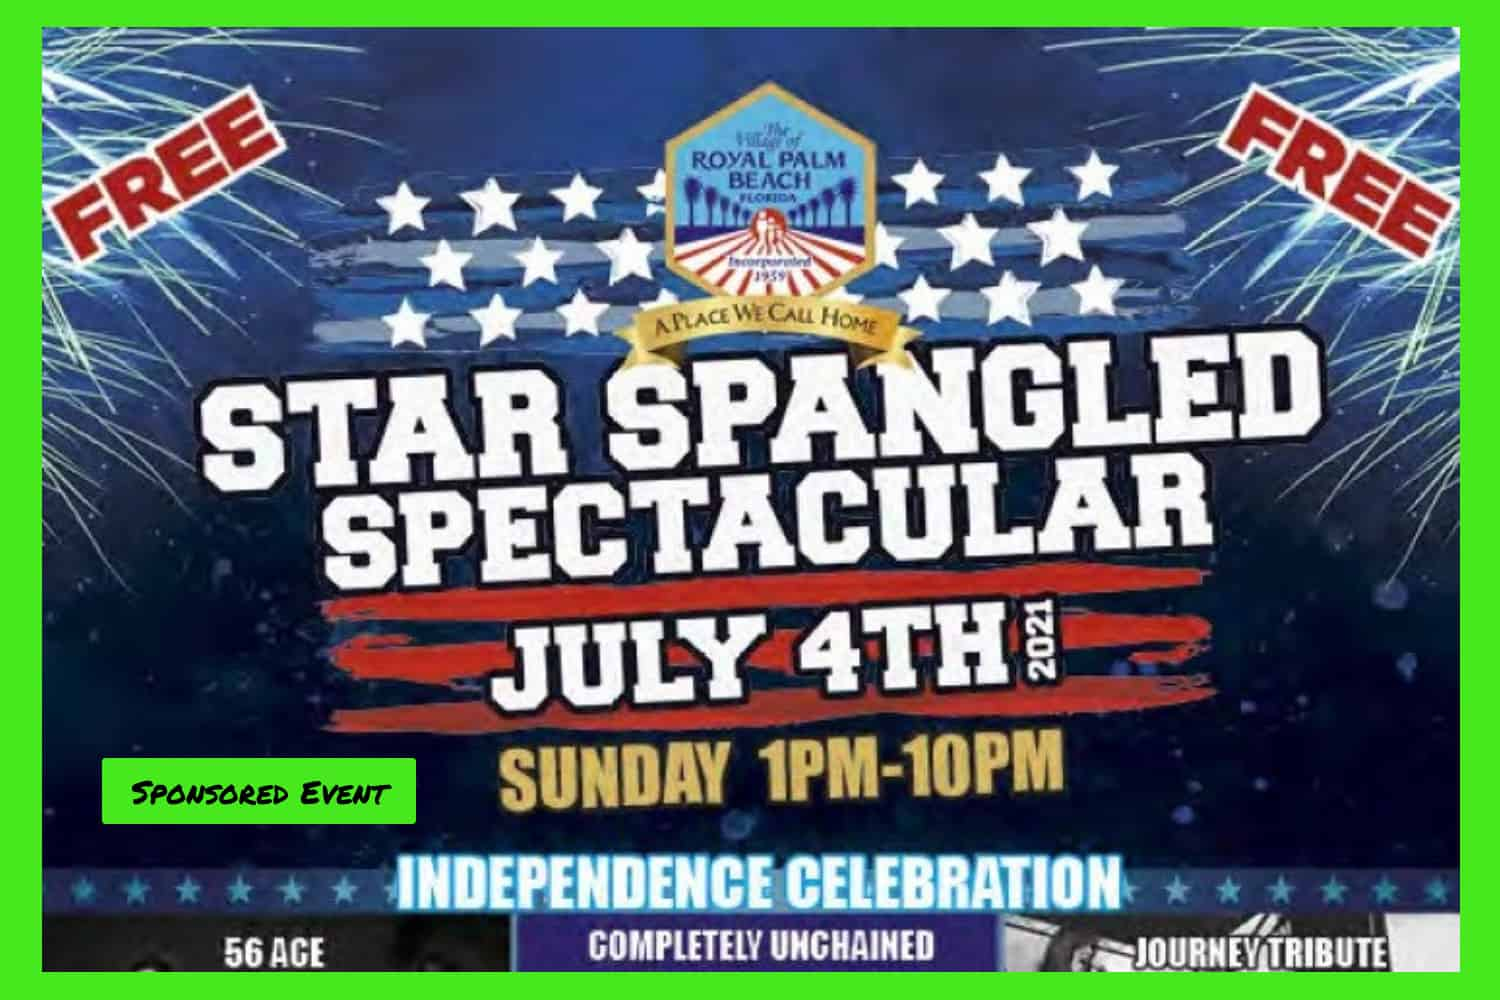 Star Spangled Spectacular July 4 at Commons Park